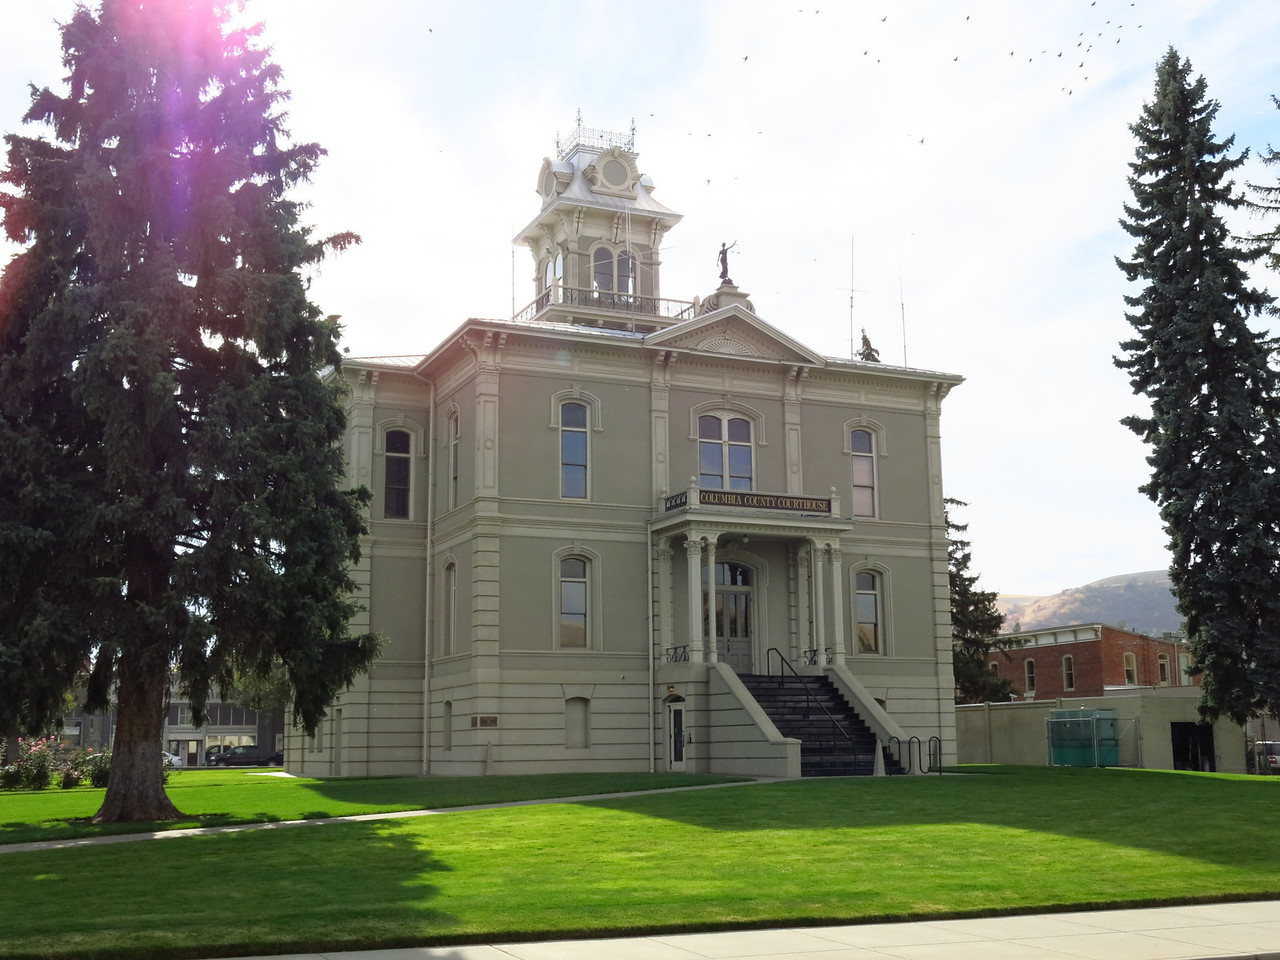 The north side of the Columbia County Courthouse, which dates from 1887,